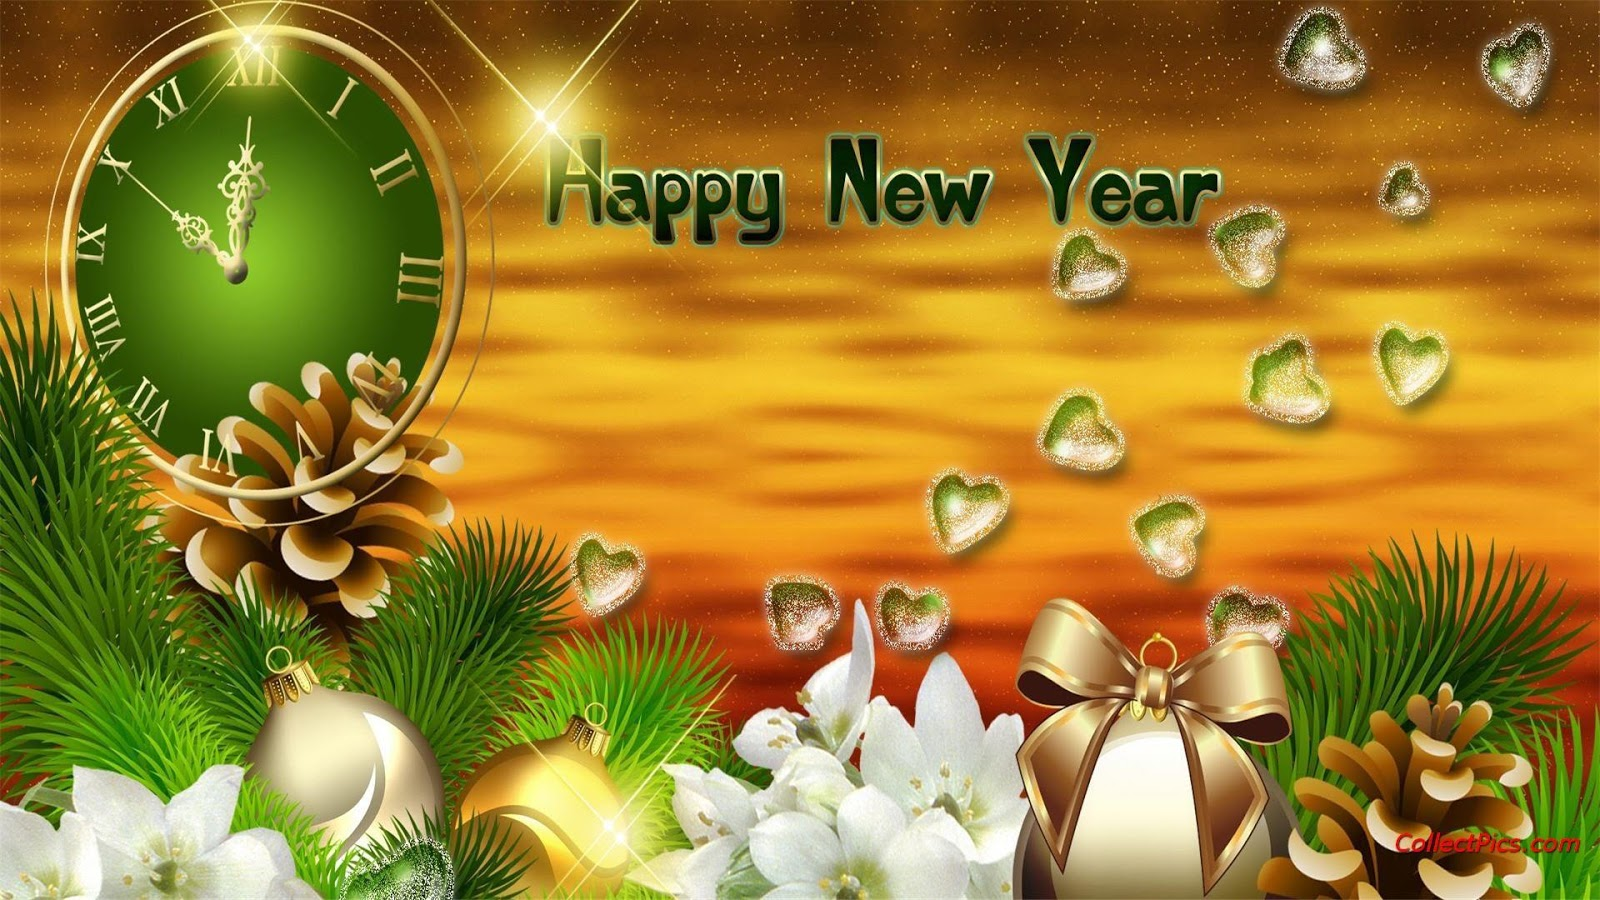 Download New Year Wallpaper Free